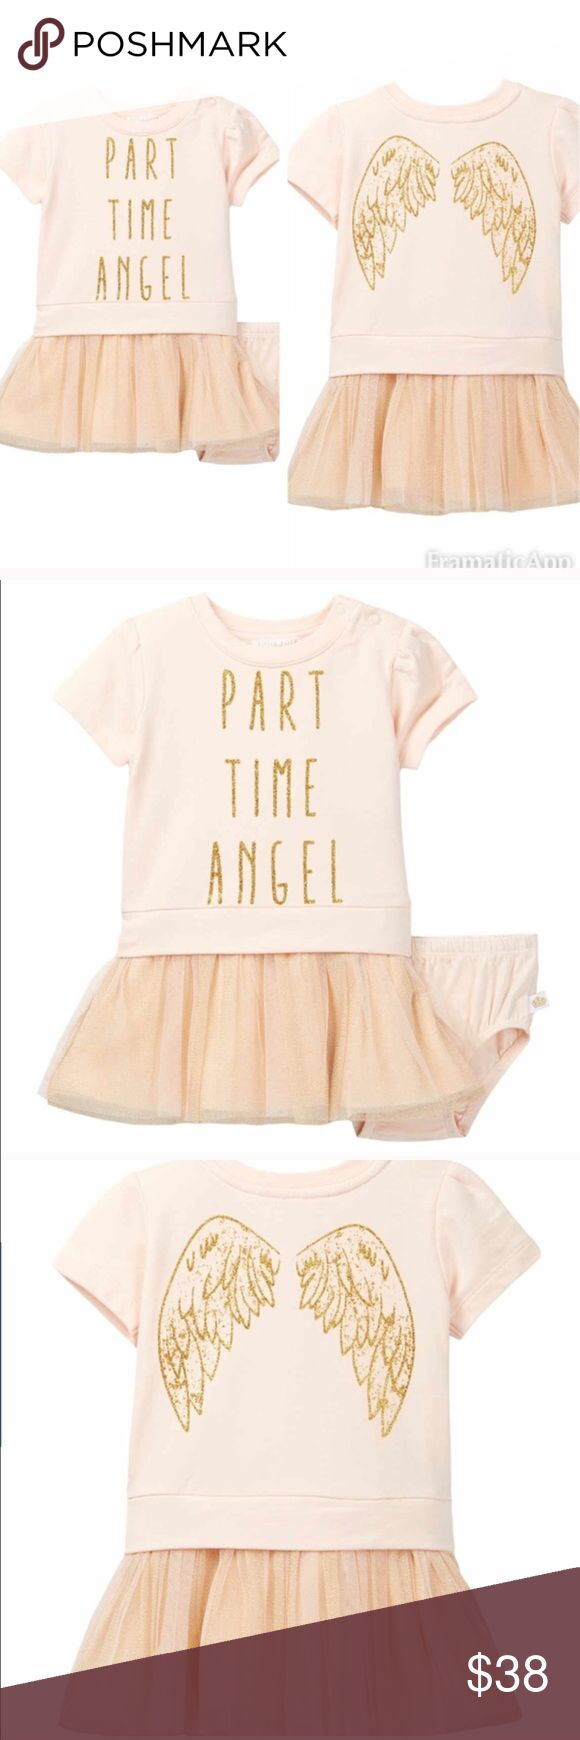 """Rosie Pope tutu Dress This is an adorable NWT glittery tutu dress & bloomer set. It's a very pretty light peach/champagne color. Top is a crew neck with shoulder snap closure, front & back glitter graphics and glitter ruffle mesh overlay at hem. Lining is solid. Materials are 95% cotton & 5%spandex. Perfect for your little angel👼🏻. ⚜Please see my """"reasonable offers"""" listing at the top of my page before submitting an offer⚜Thank you😊 Rosie Pope Dresses Casual"""